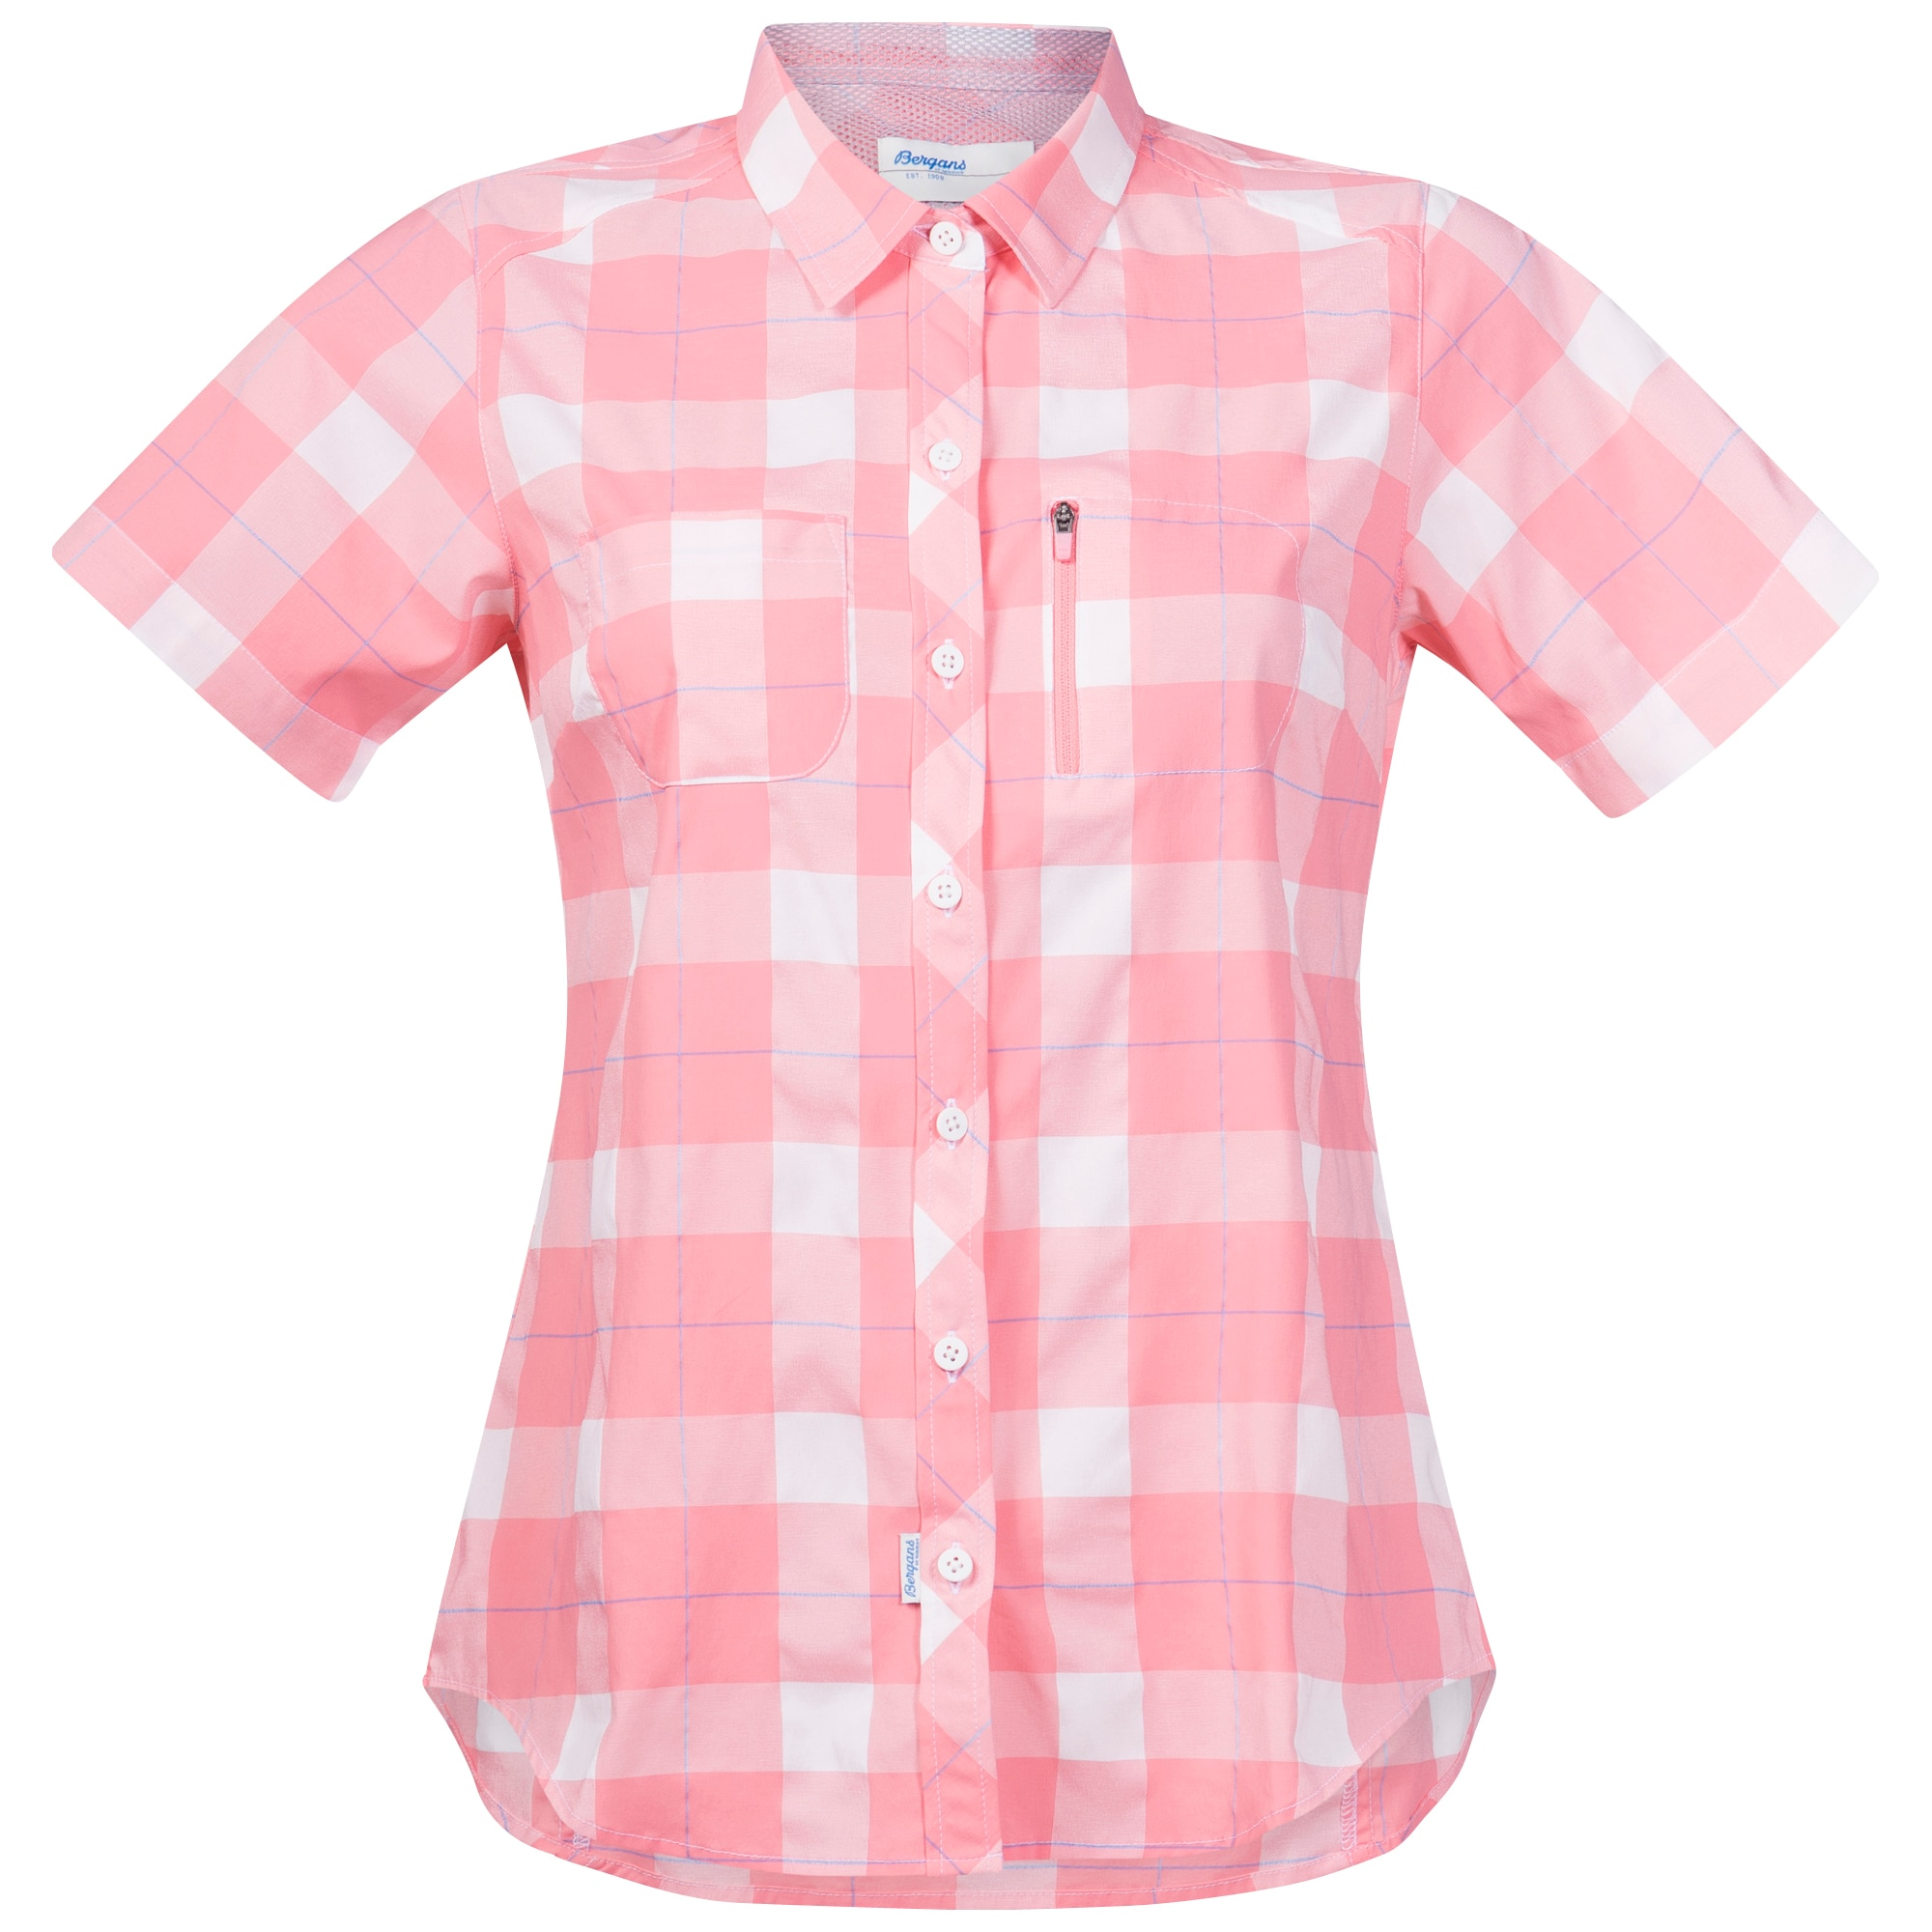 Jondal Lady Shirt Short Sleeve